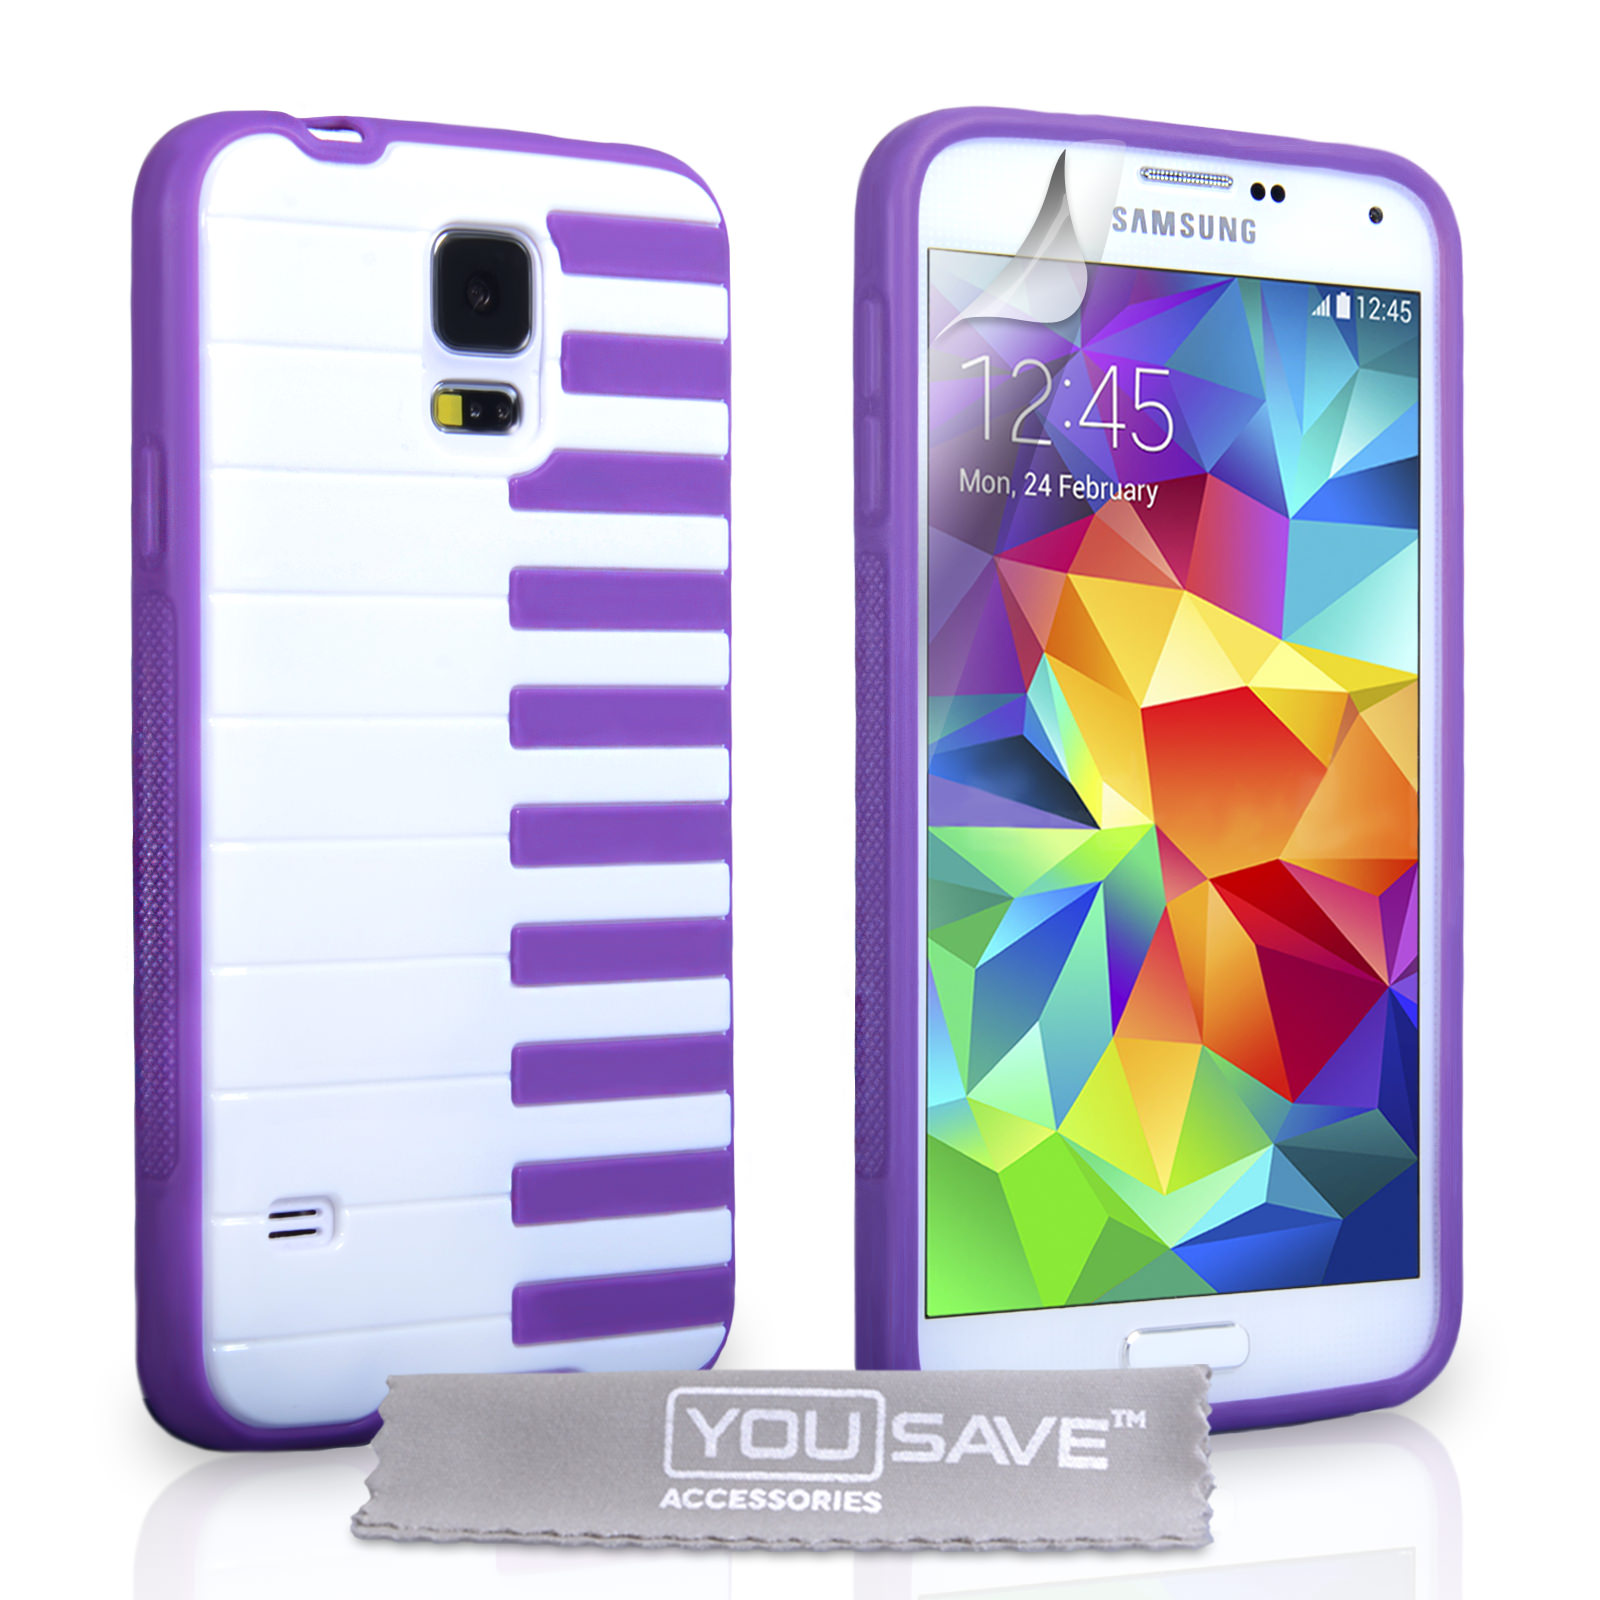 YouSave Accessories Samsung Galaxy S5 Piano Gel Case - Purple